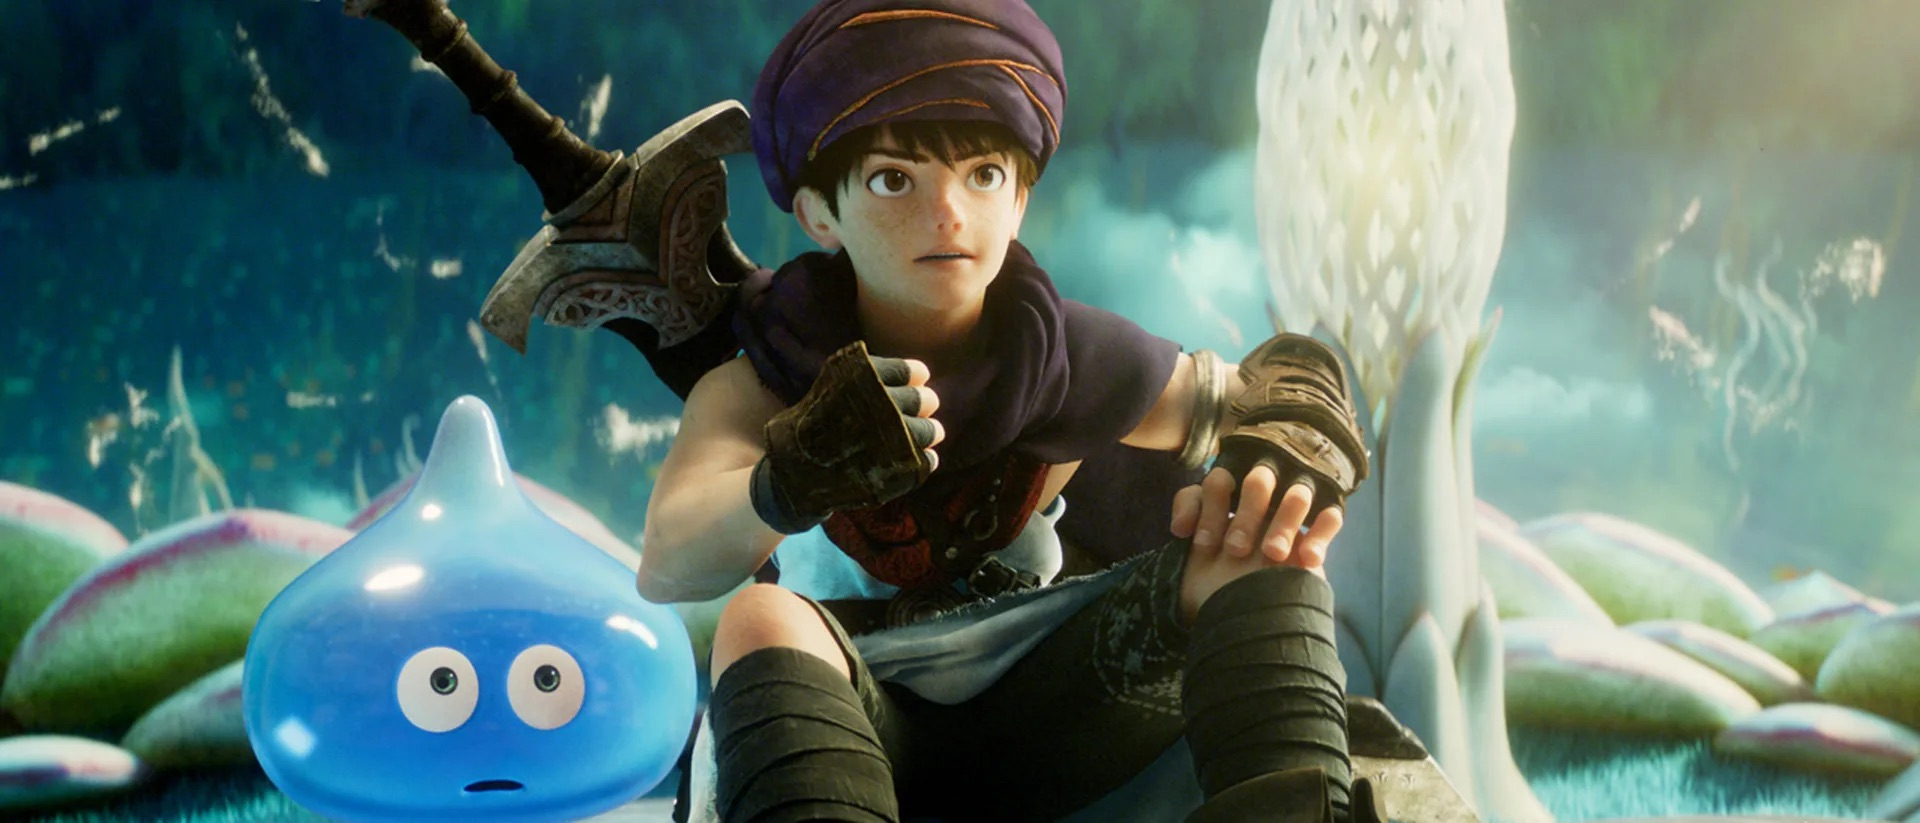 The Dragon Quest animated movie comes to Netflix in February